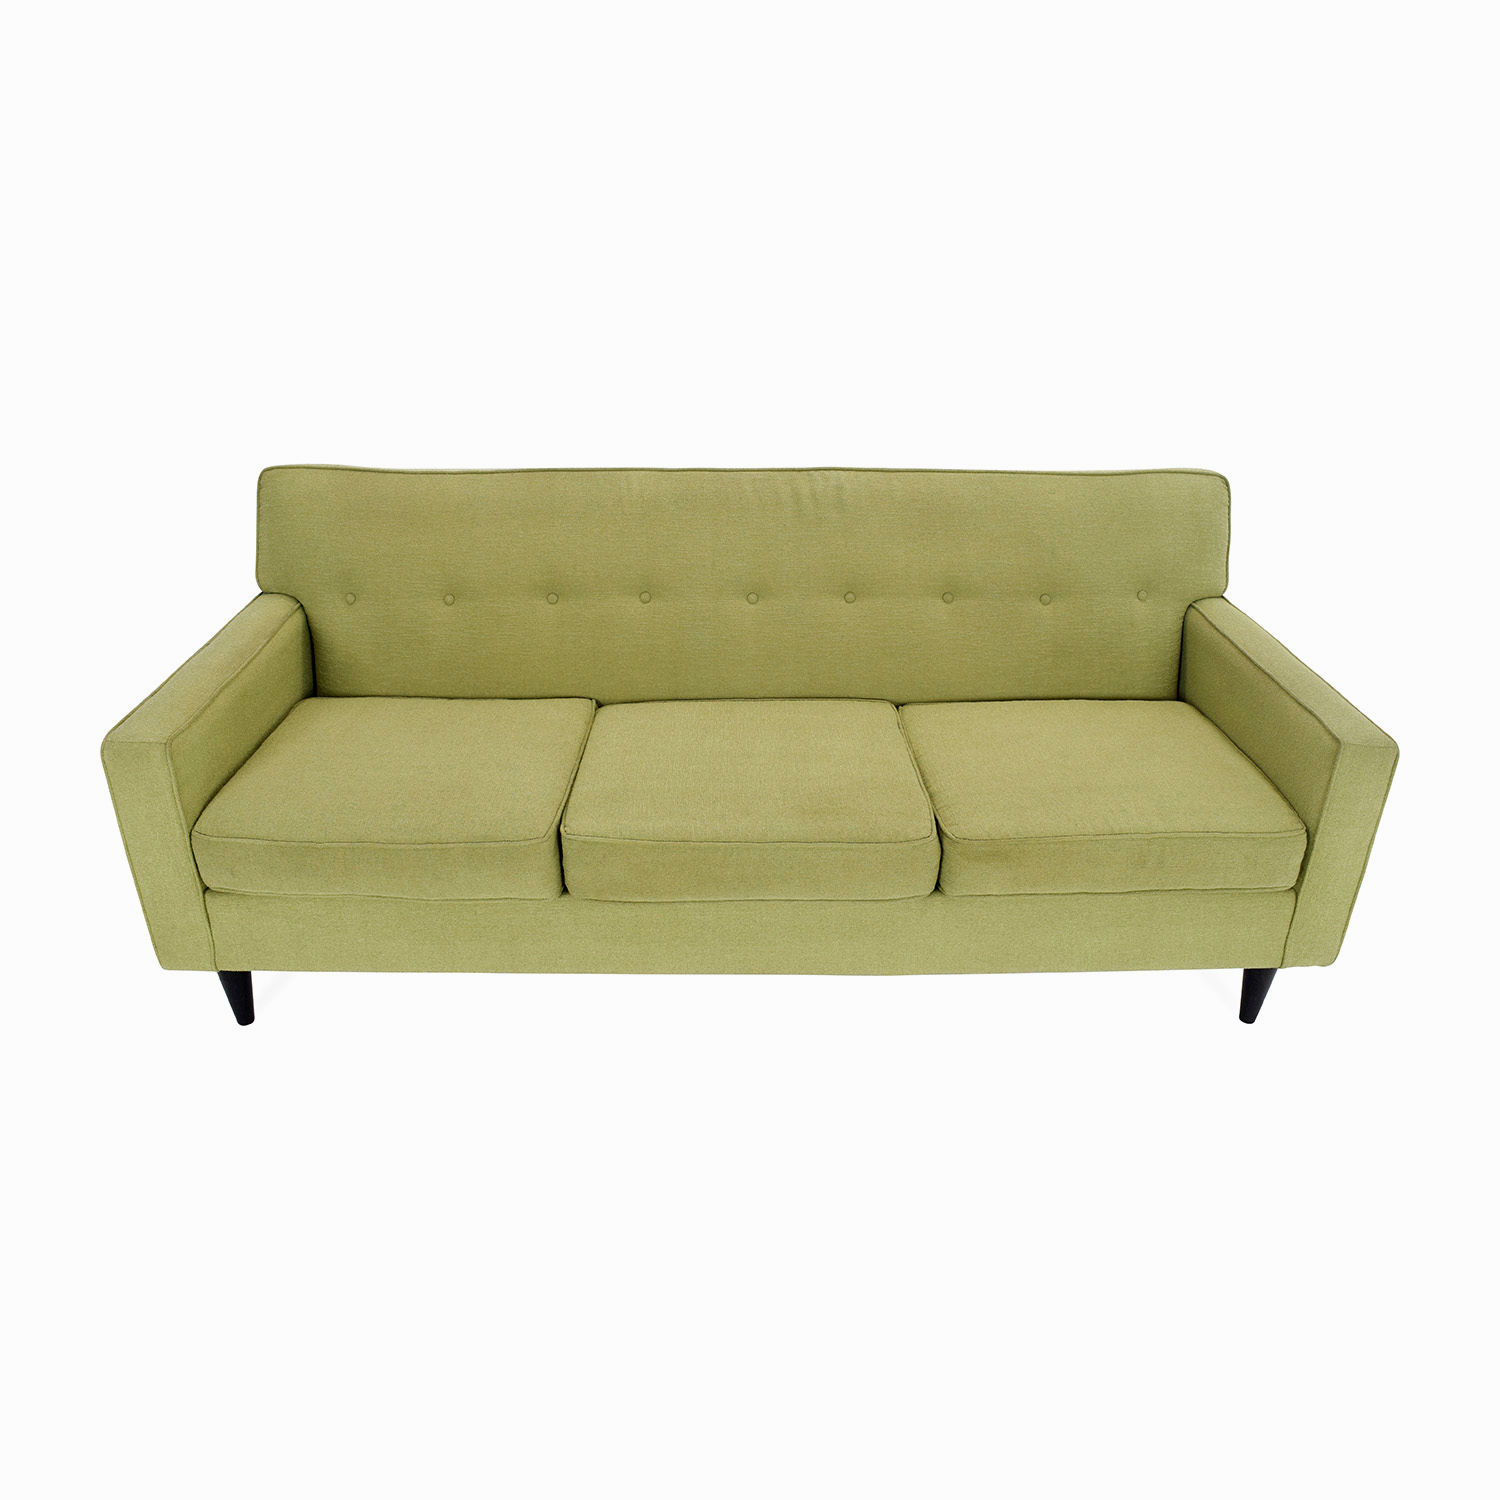 Stunning Sofa Bed Macys Plan Collection